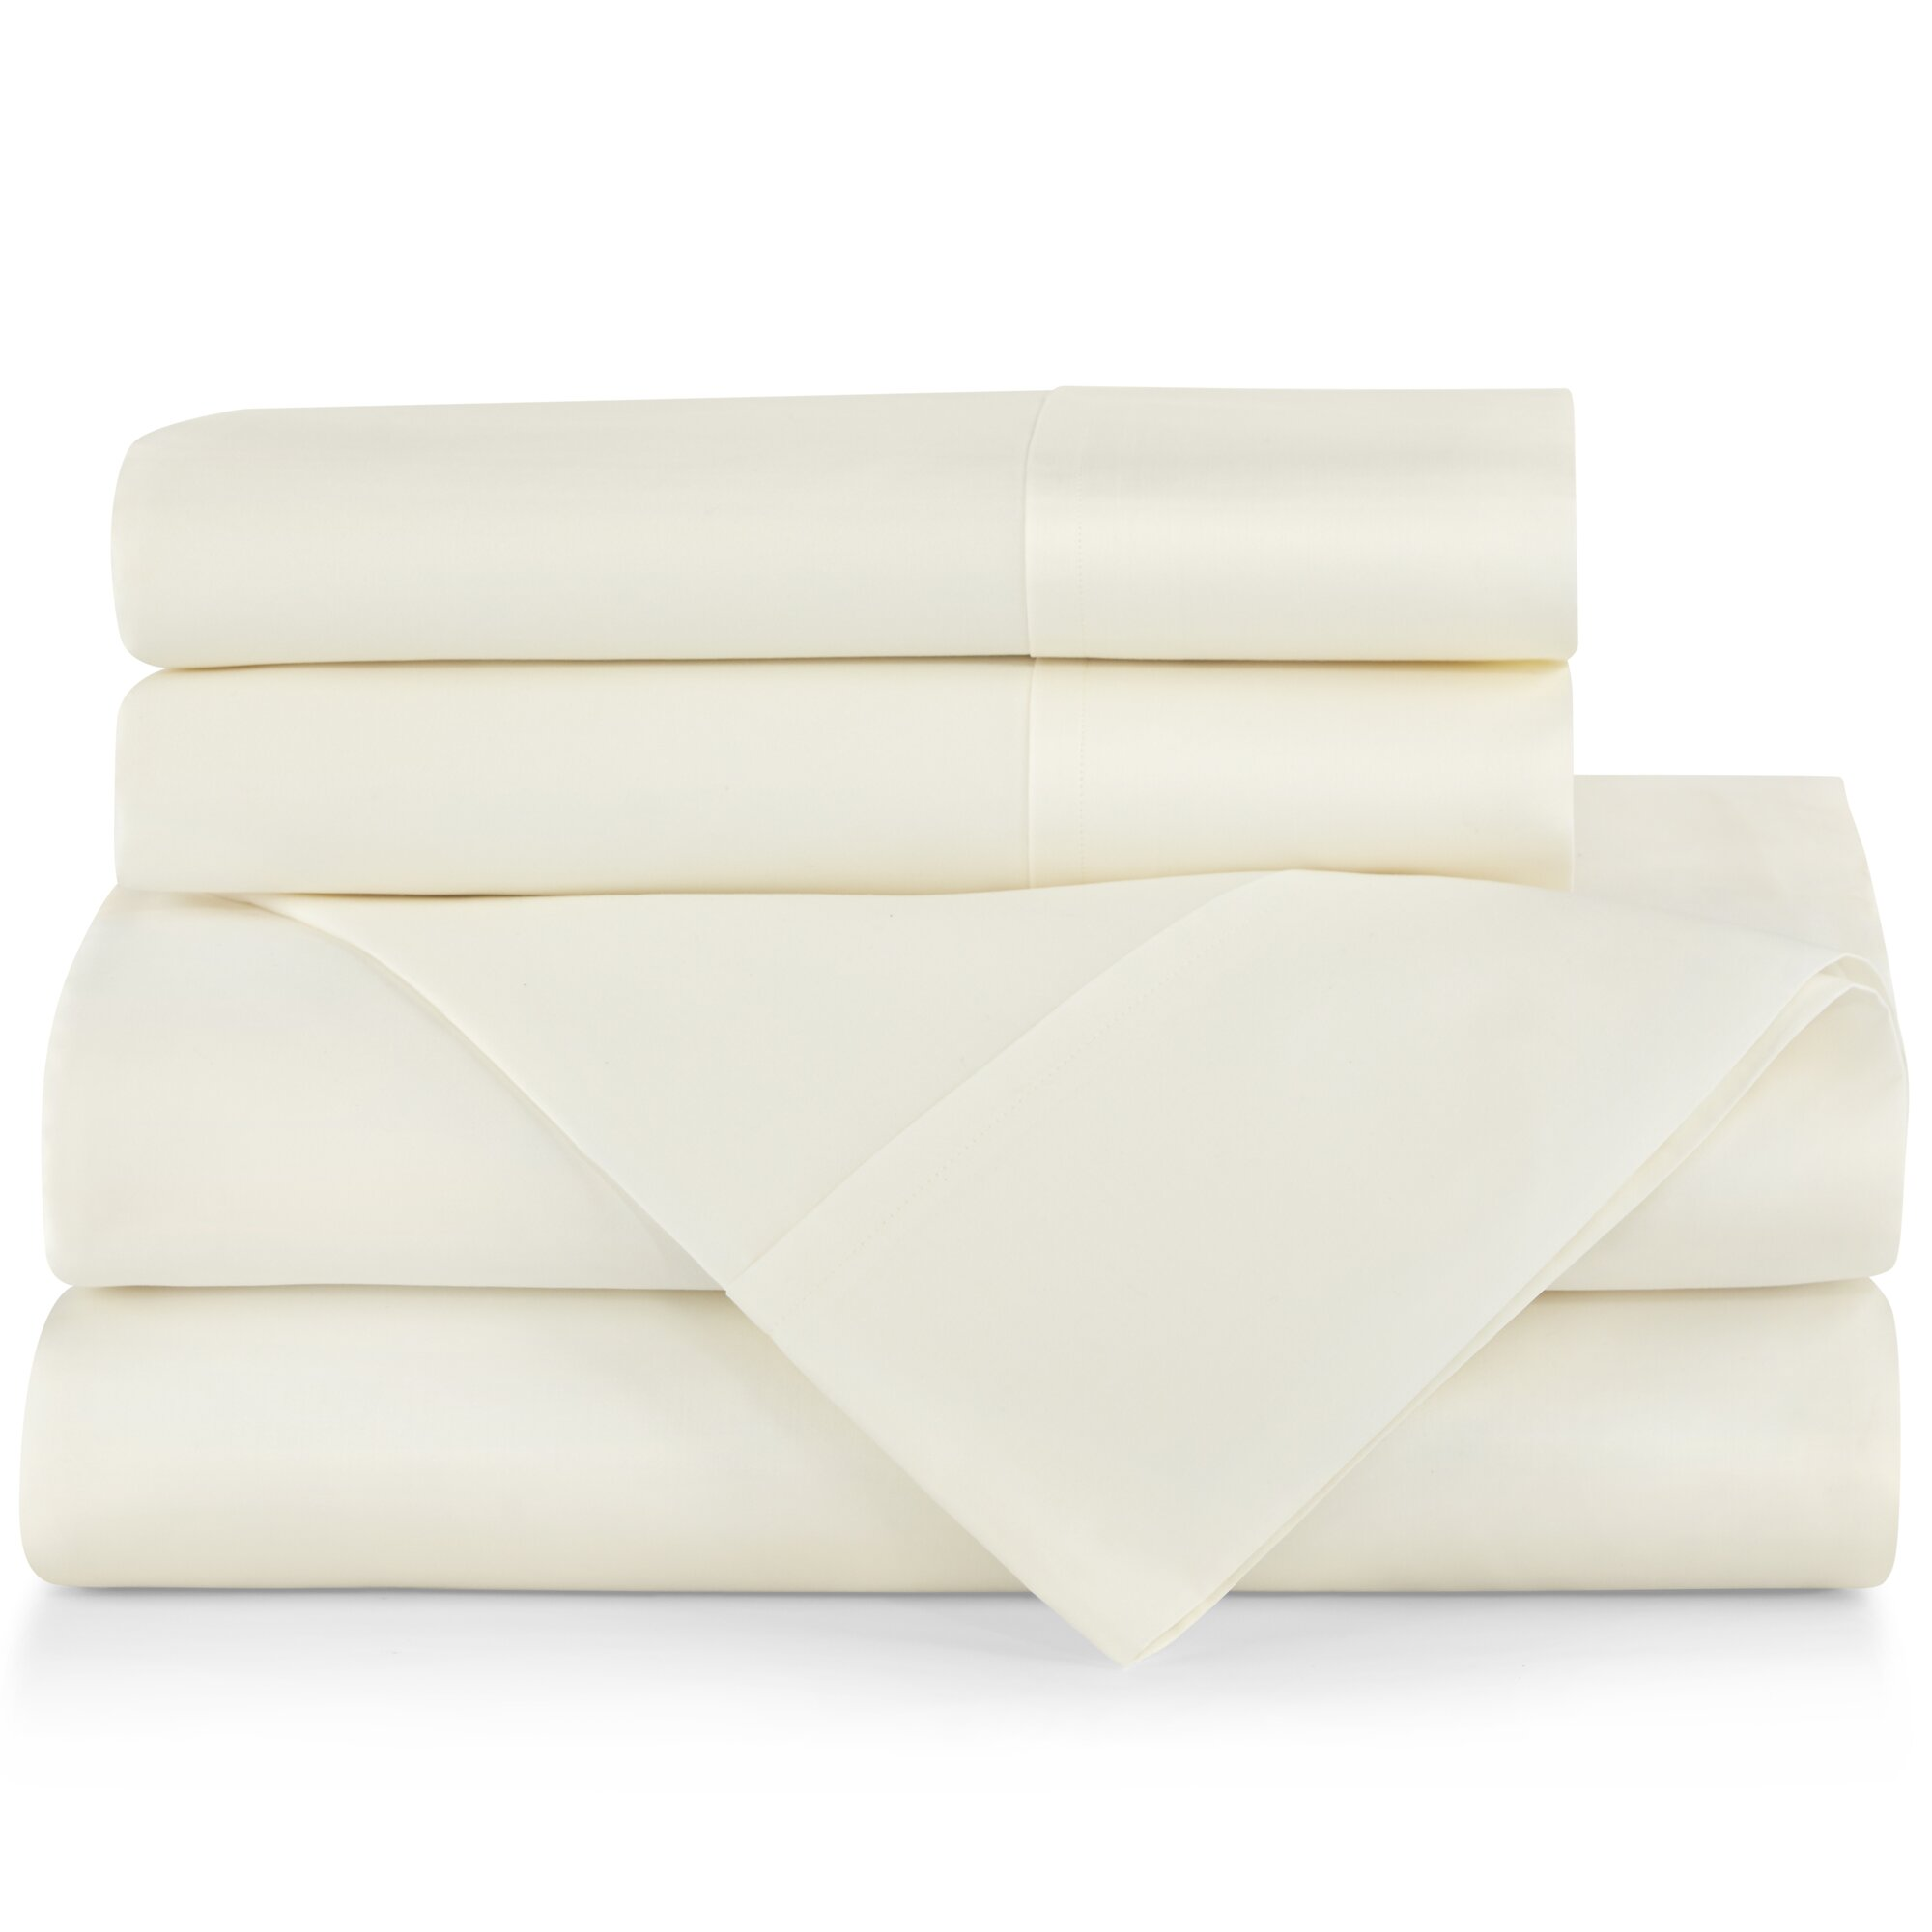 Peacock Alley 6PC King Sheet Set LONG STAPLE Cotton 4 Pillowcases Ivory $450 New